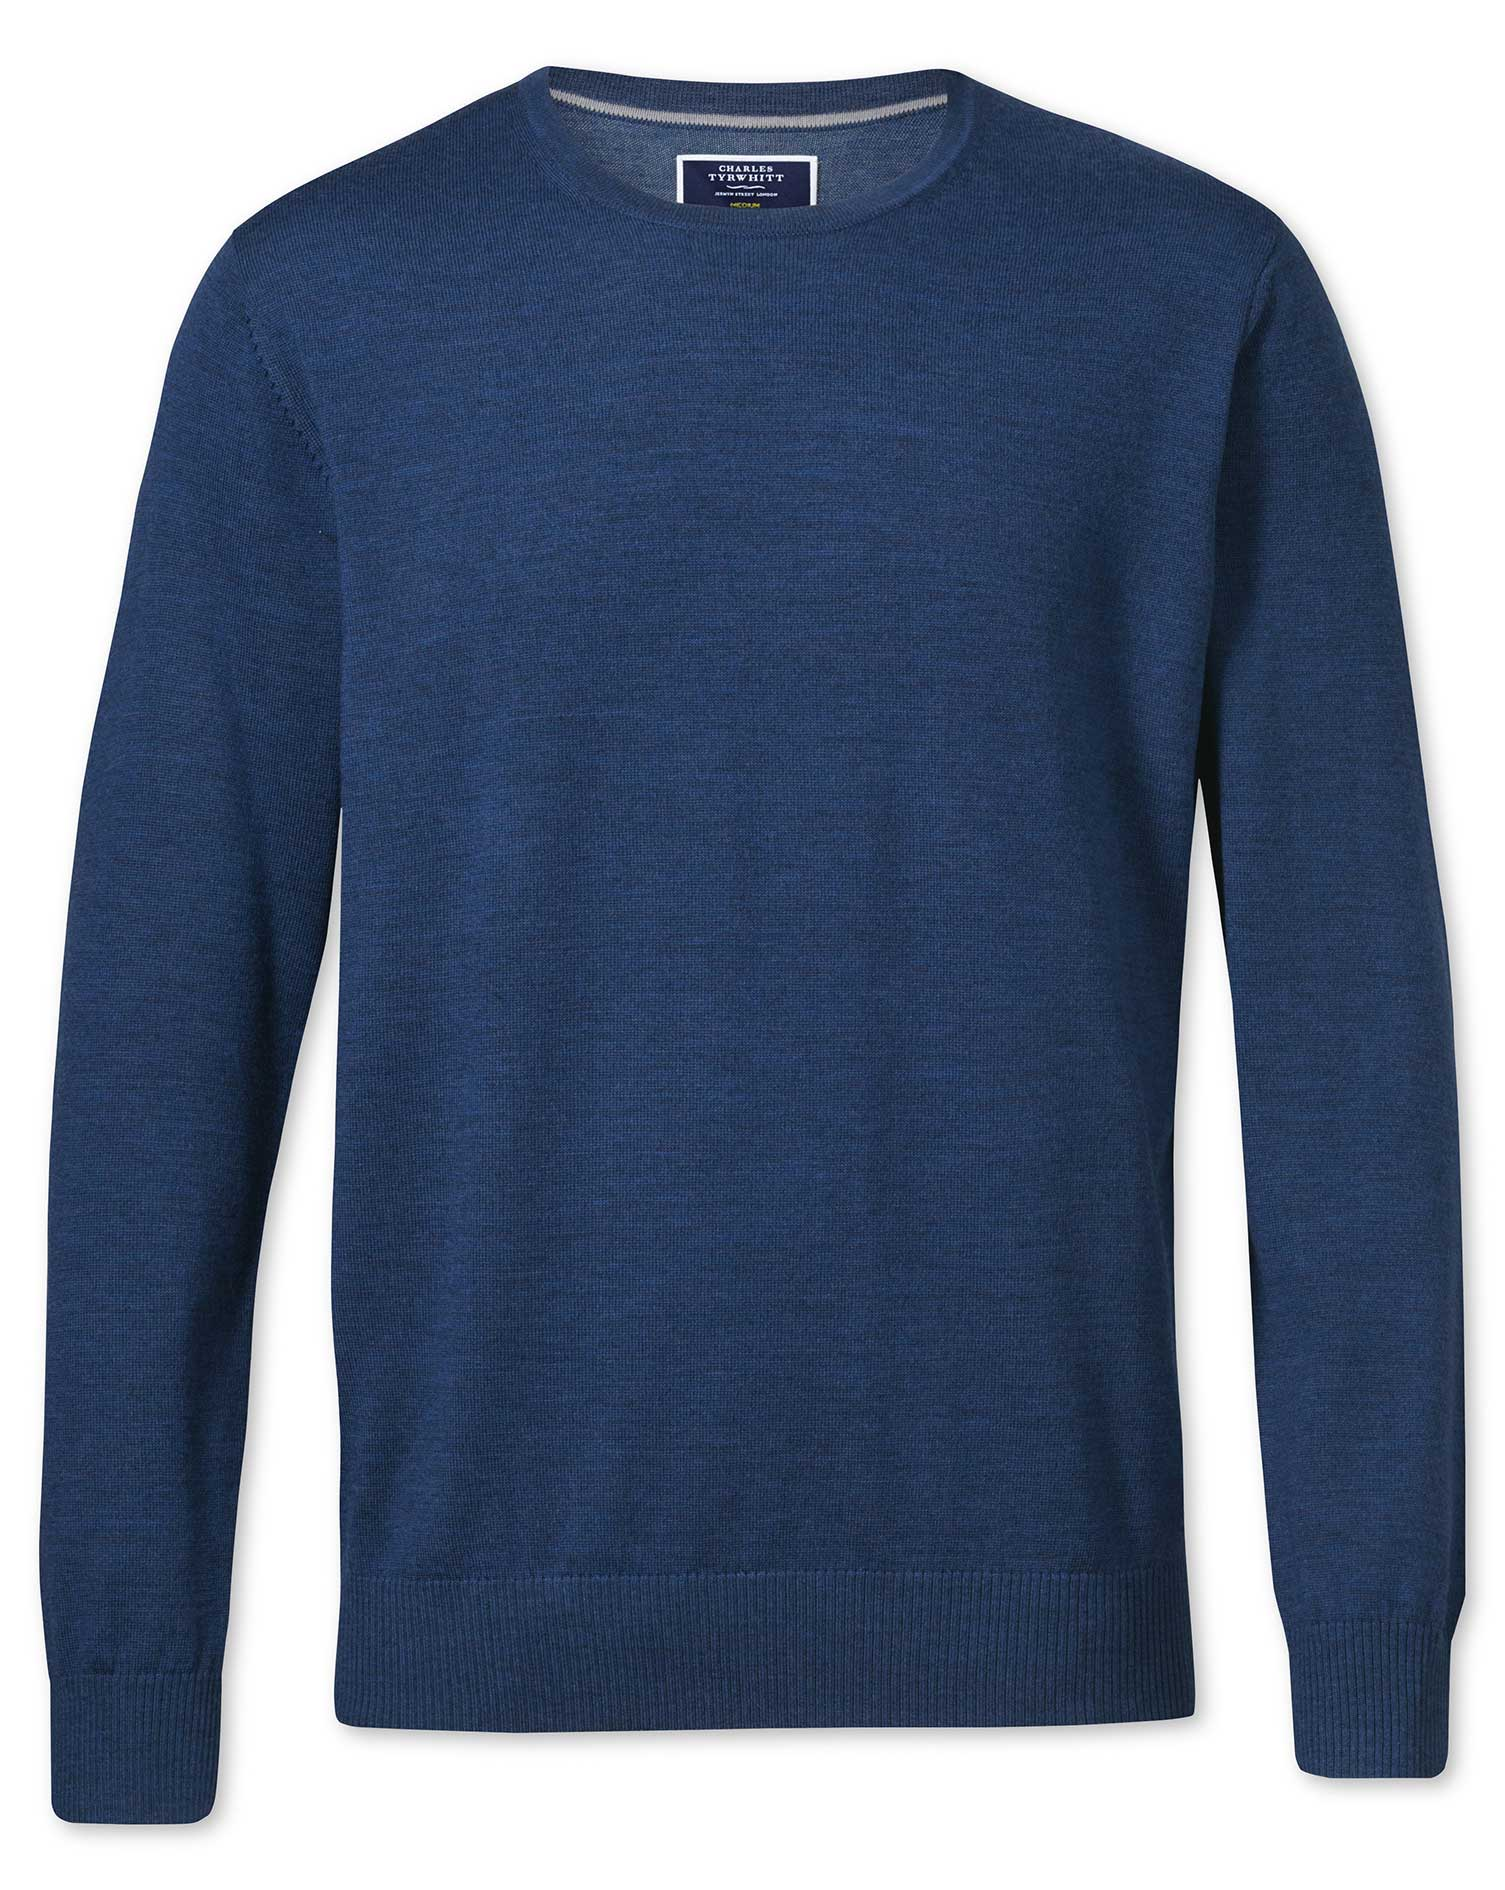 Mid Blue Merino Wool Crew Neck Jumper Size Small by Charles Tyrwhitt